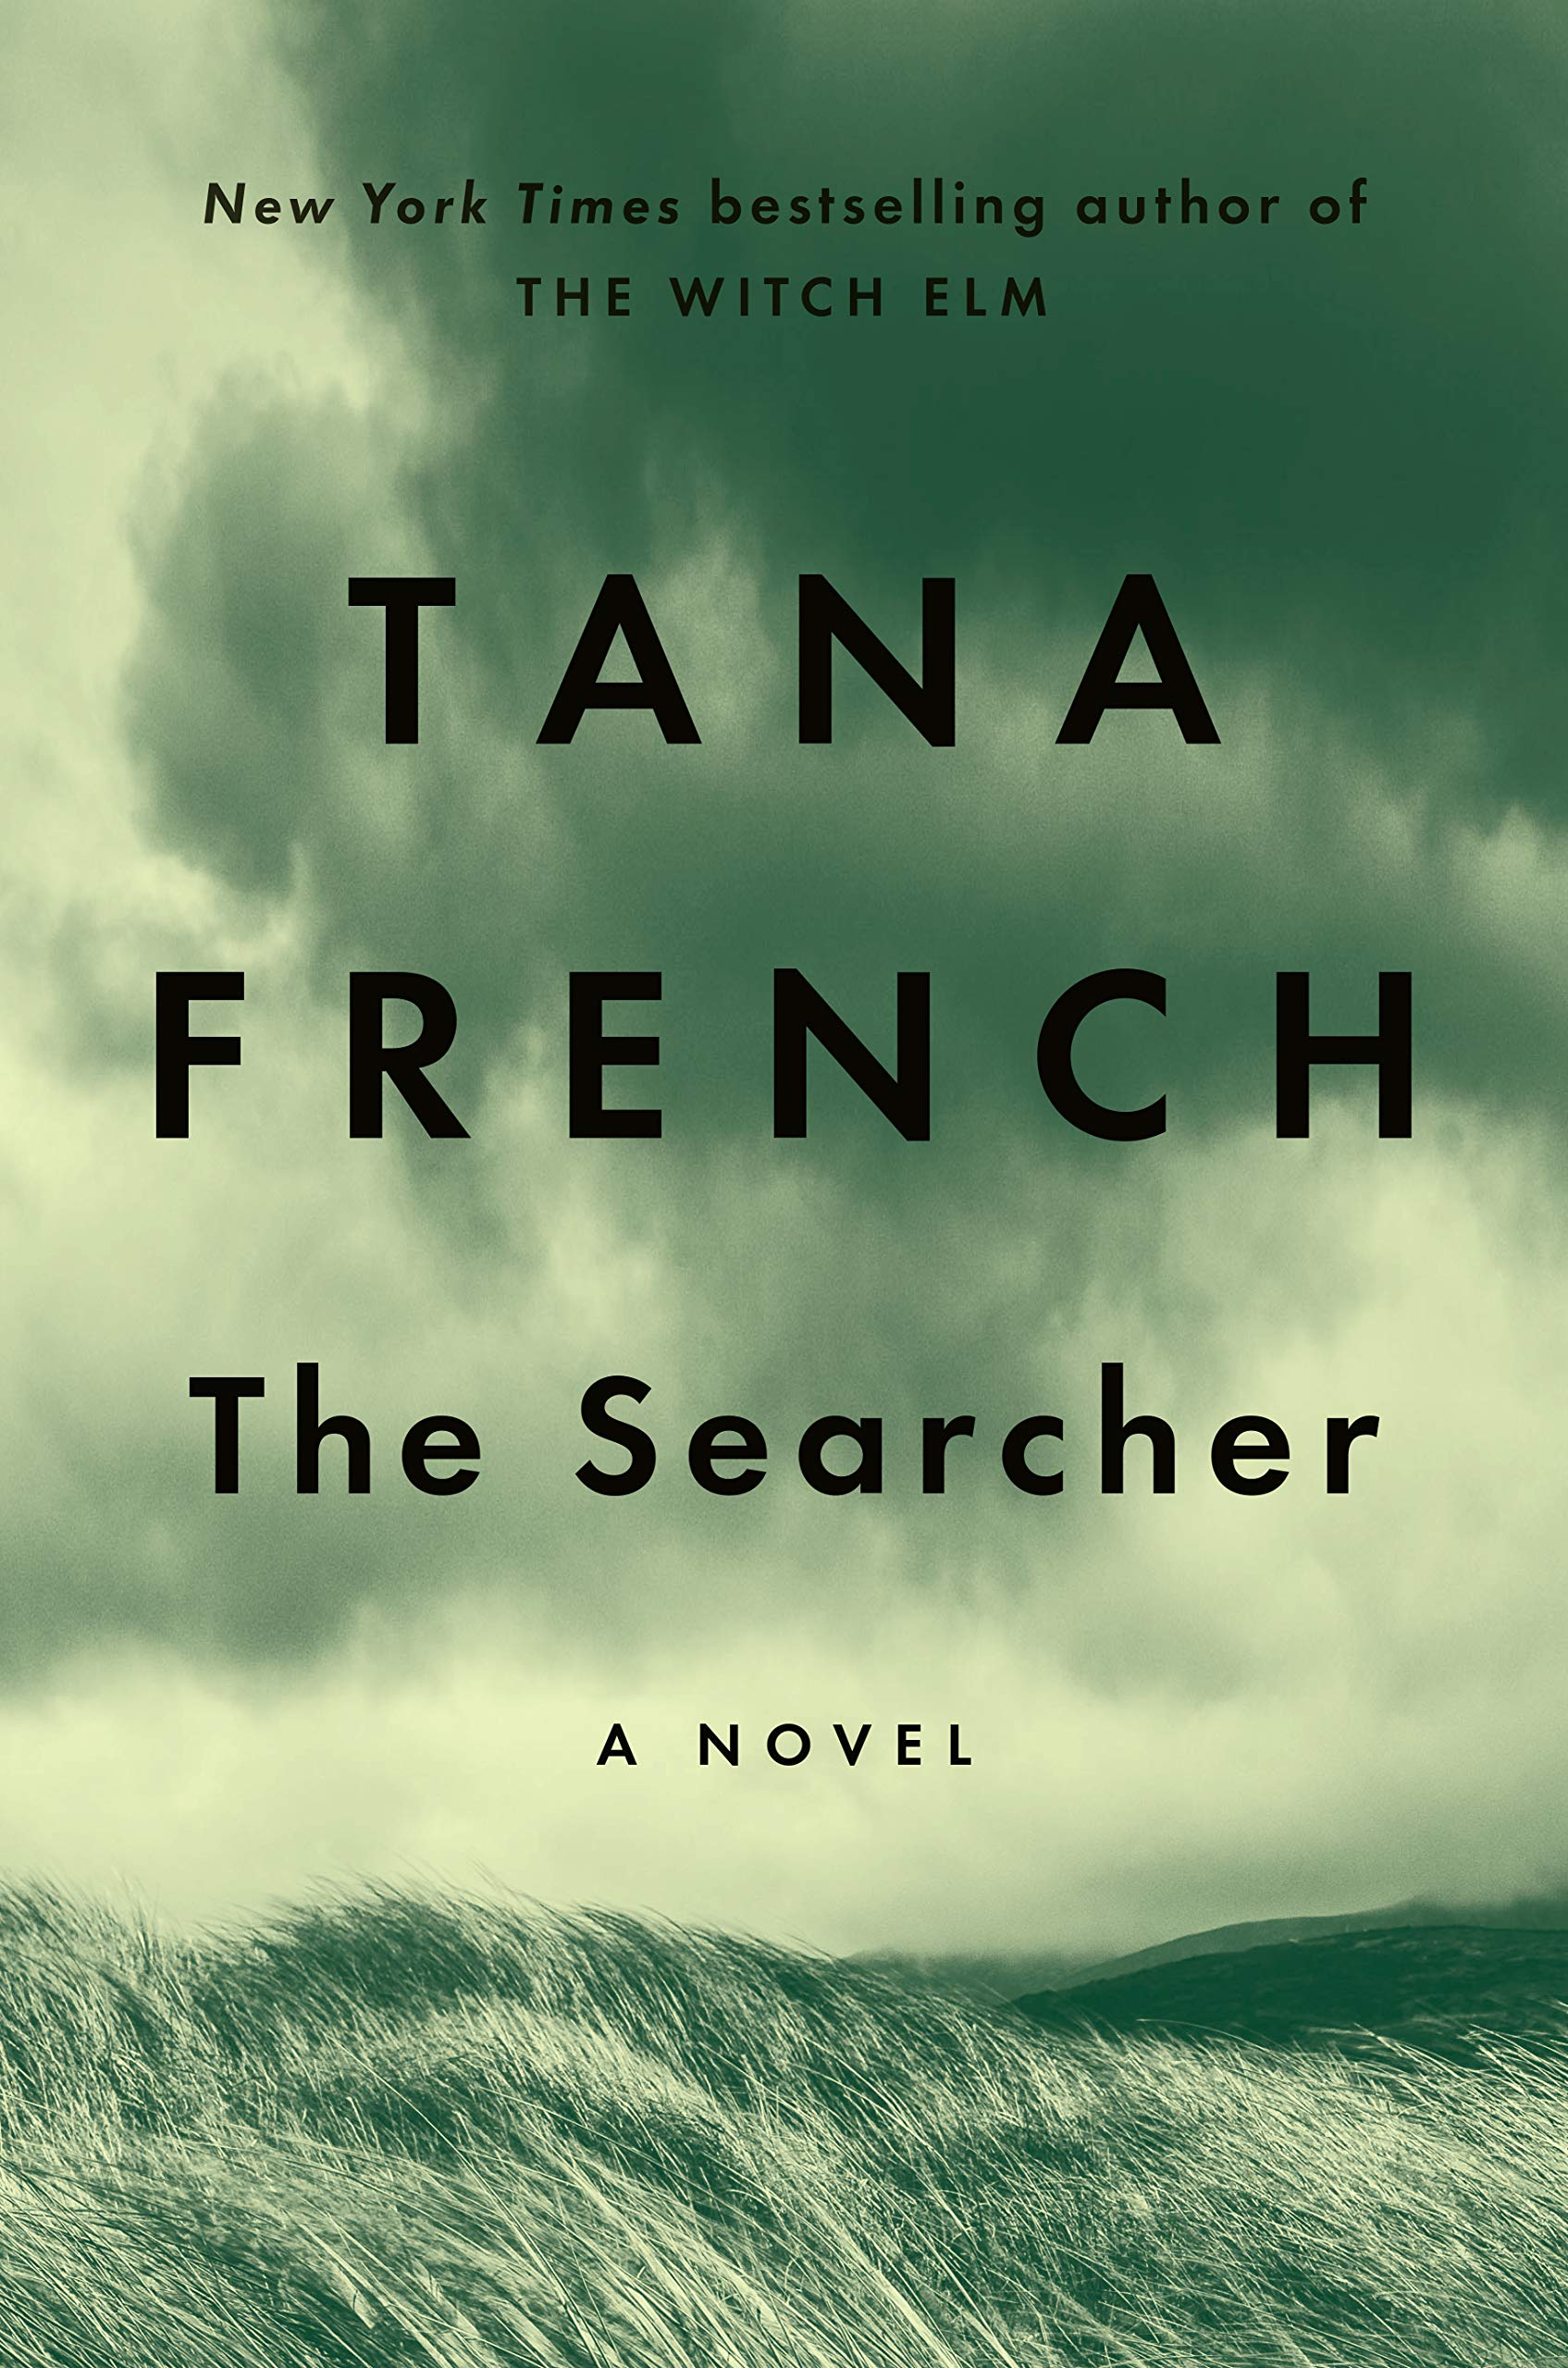 Cover image of The Searcher by Tana French